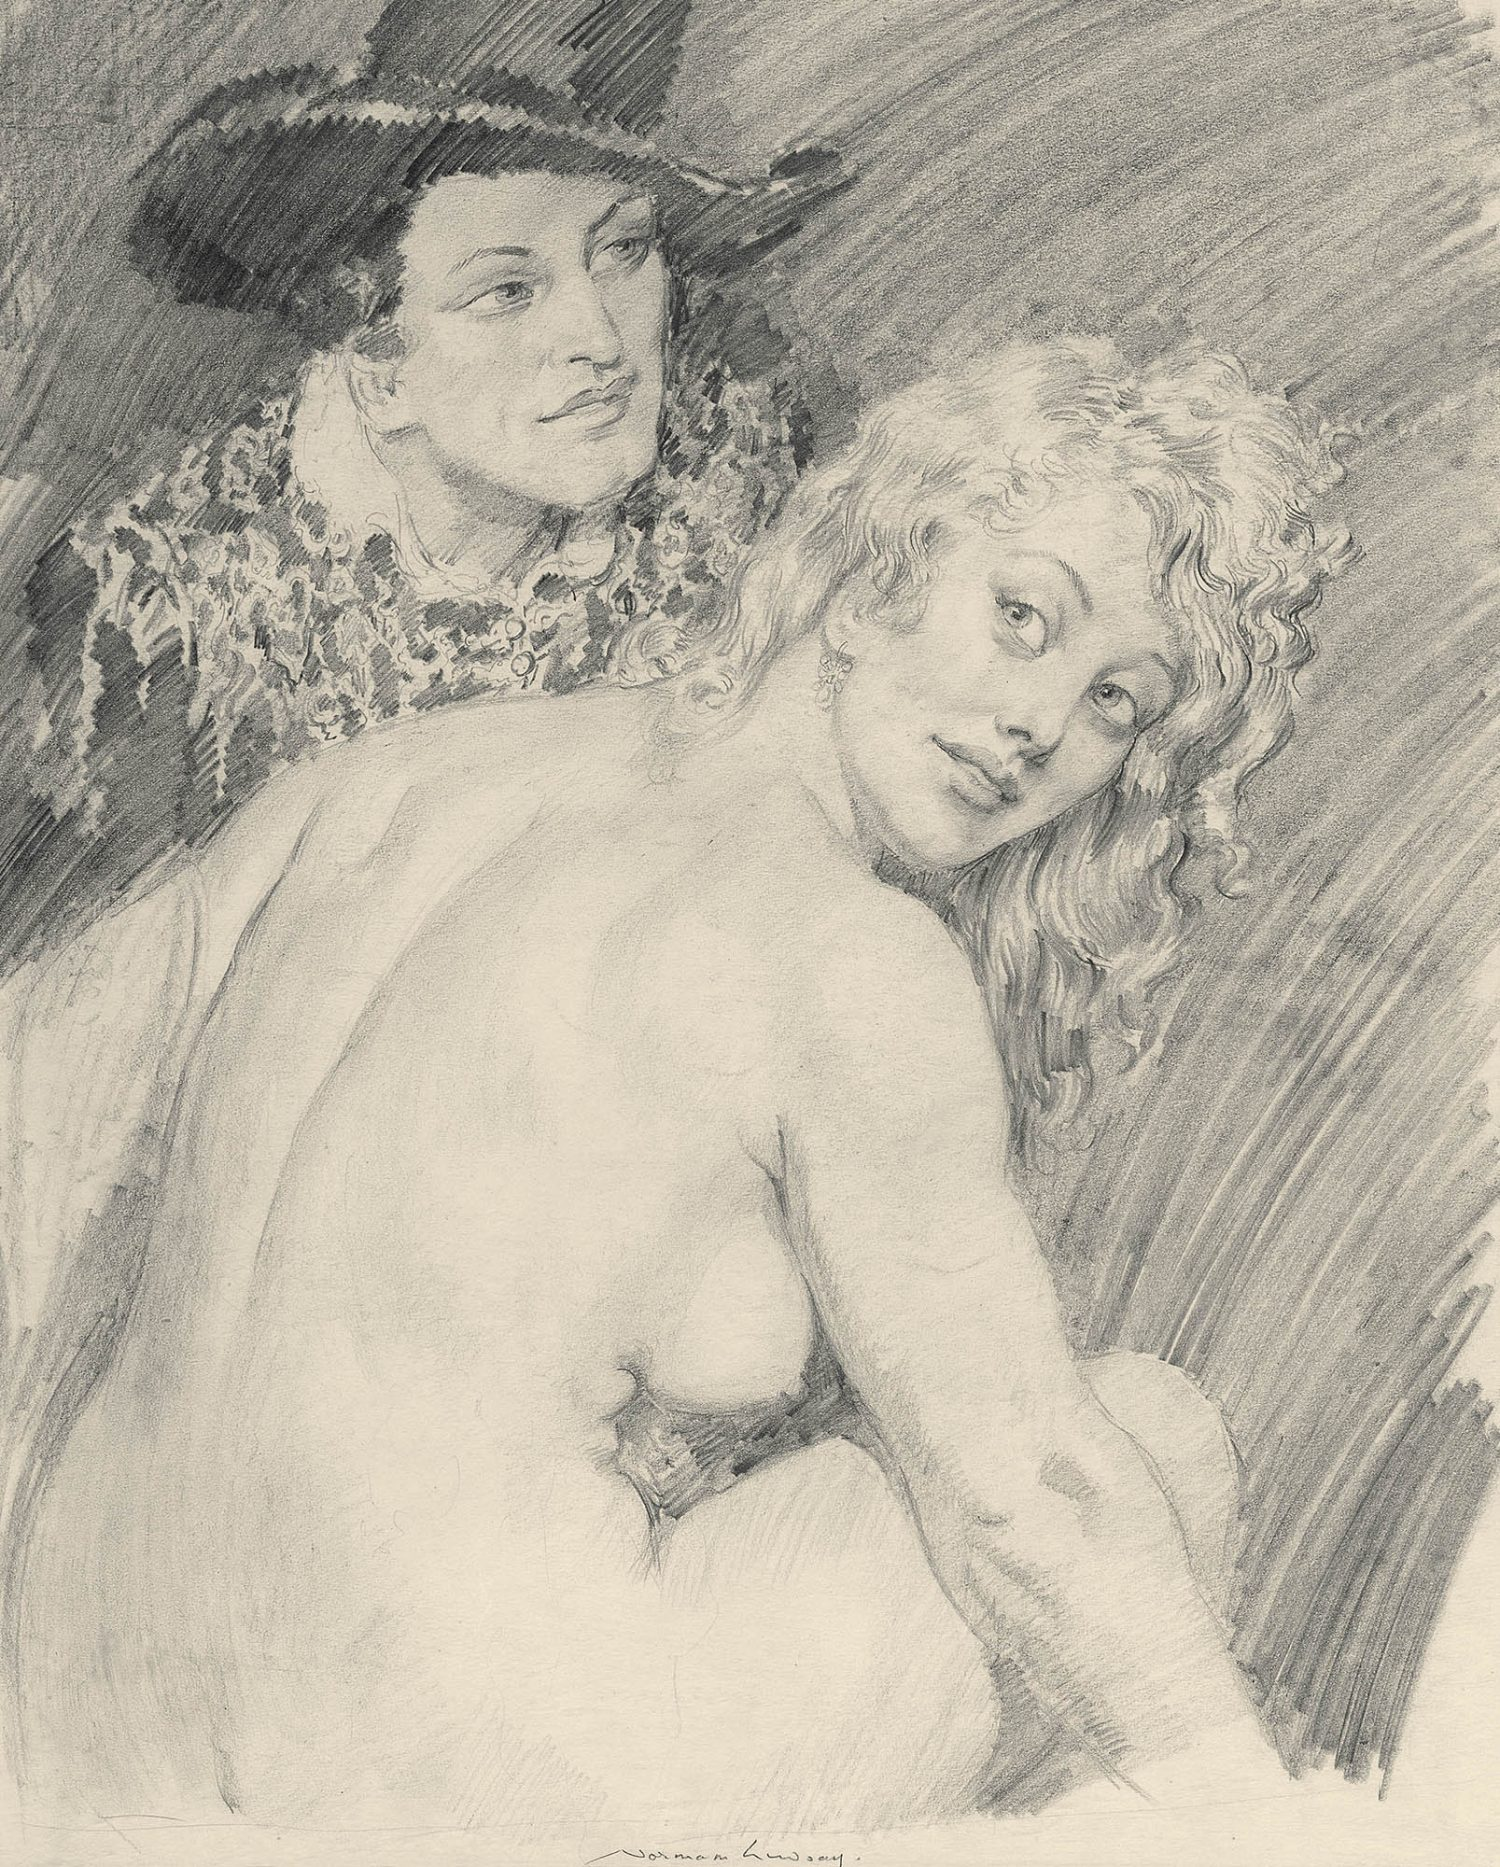 Norman Lindsay (1878-1969), Study for Marriage